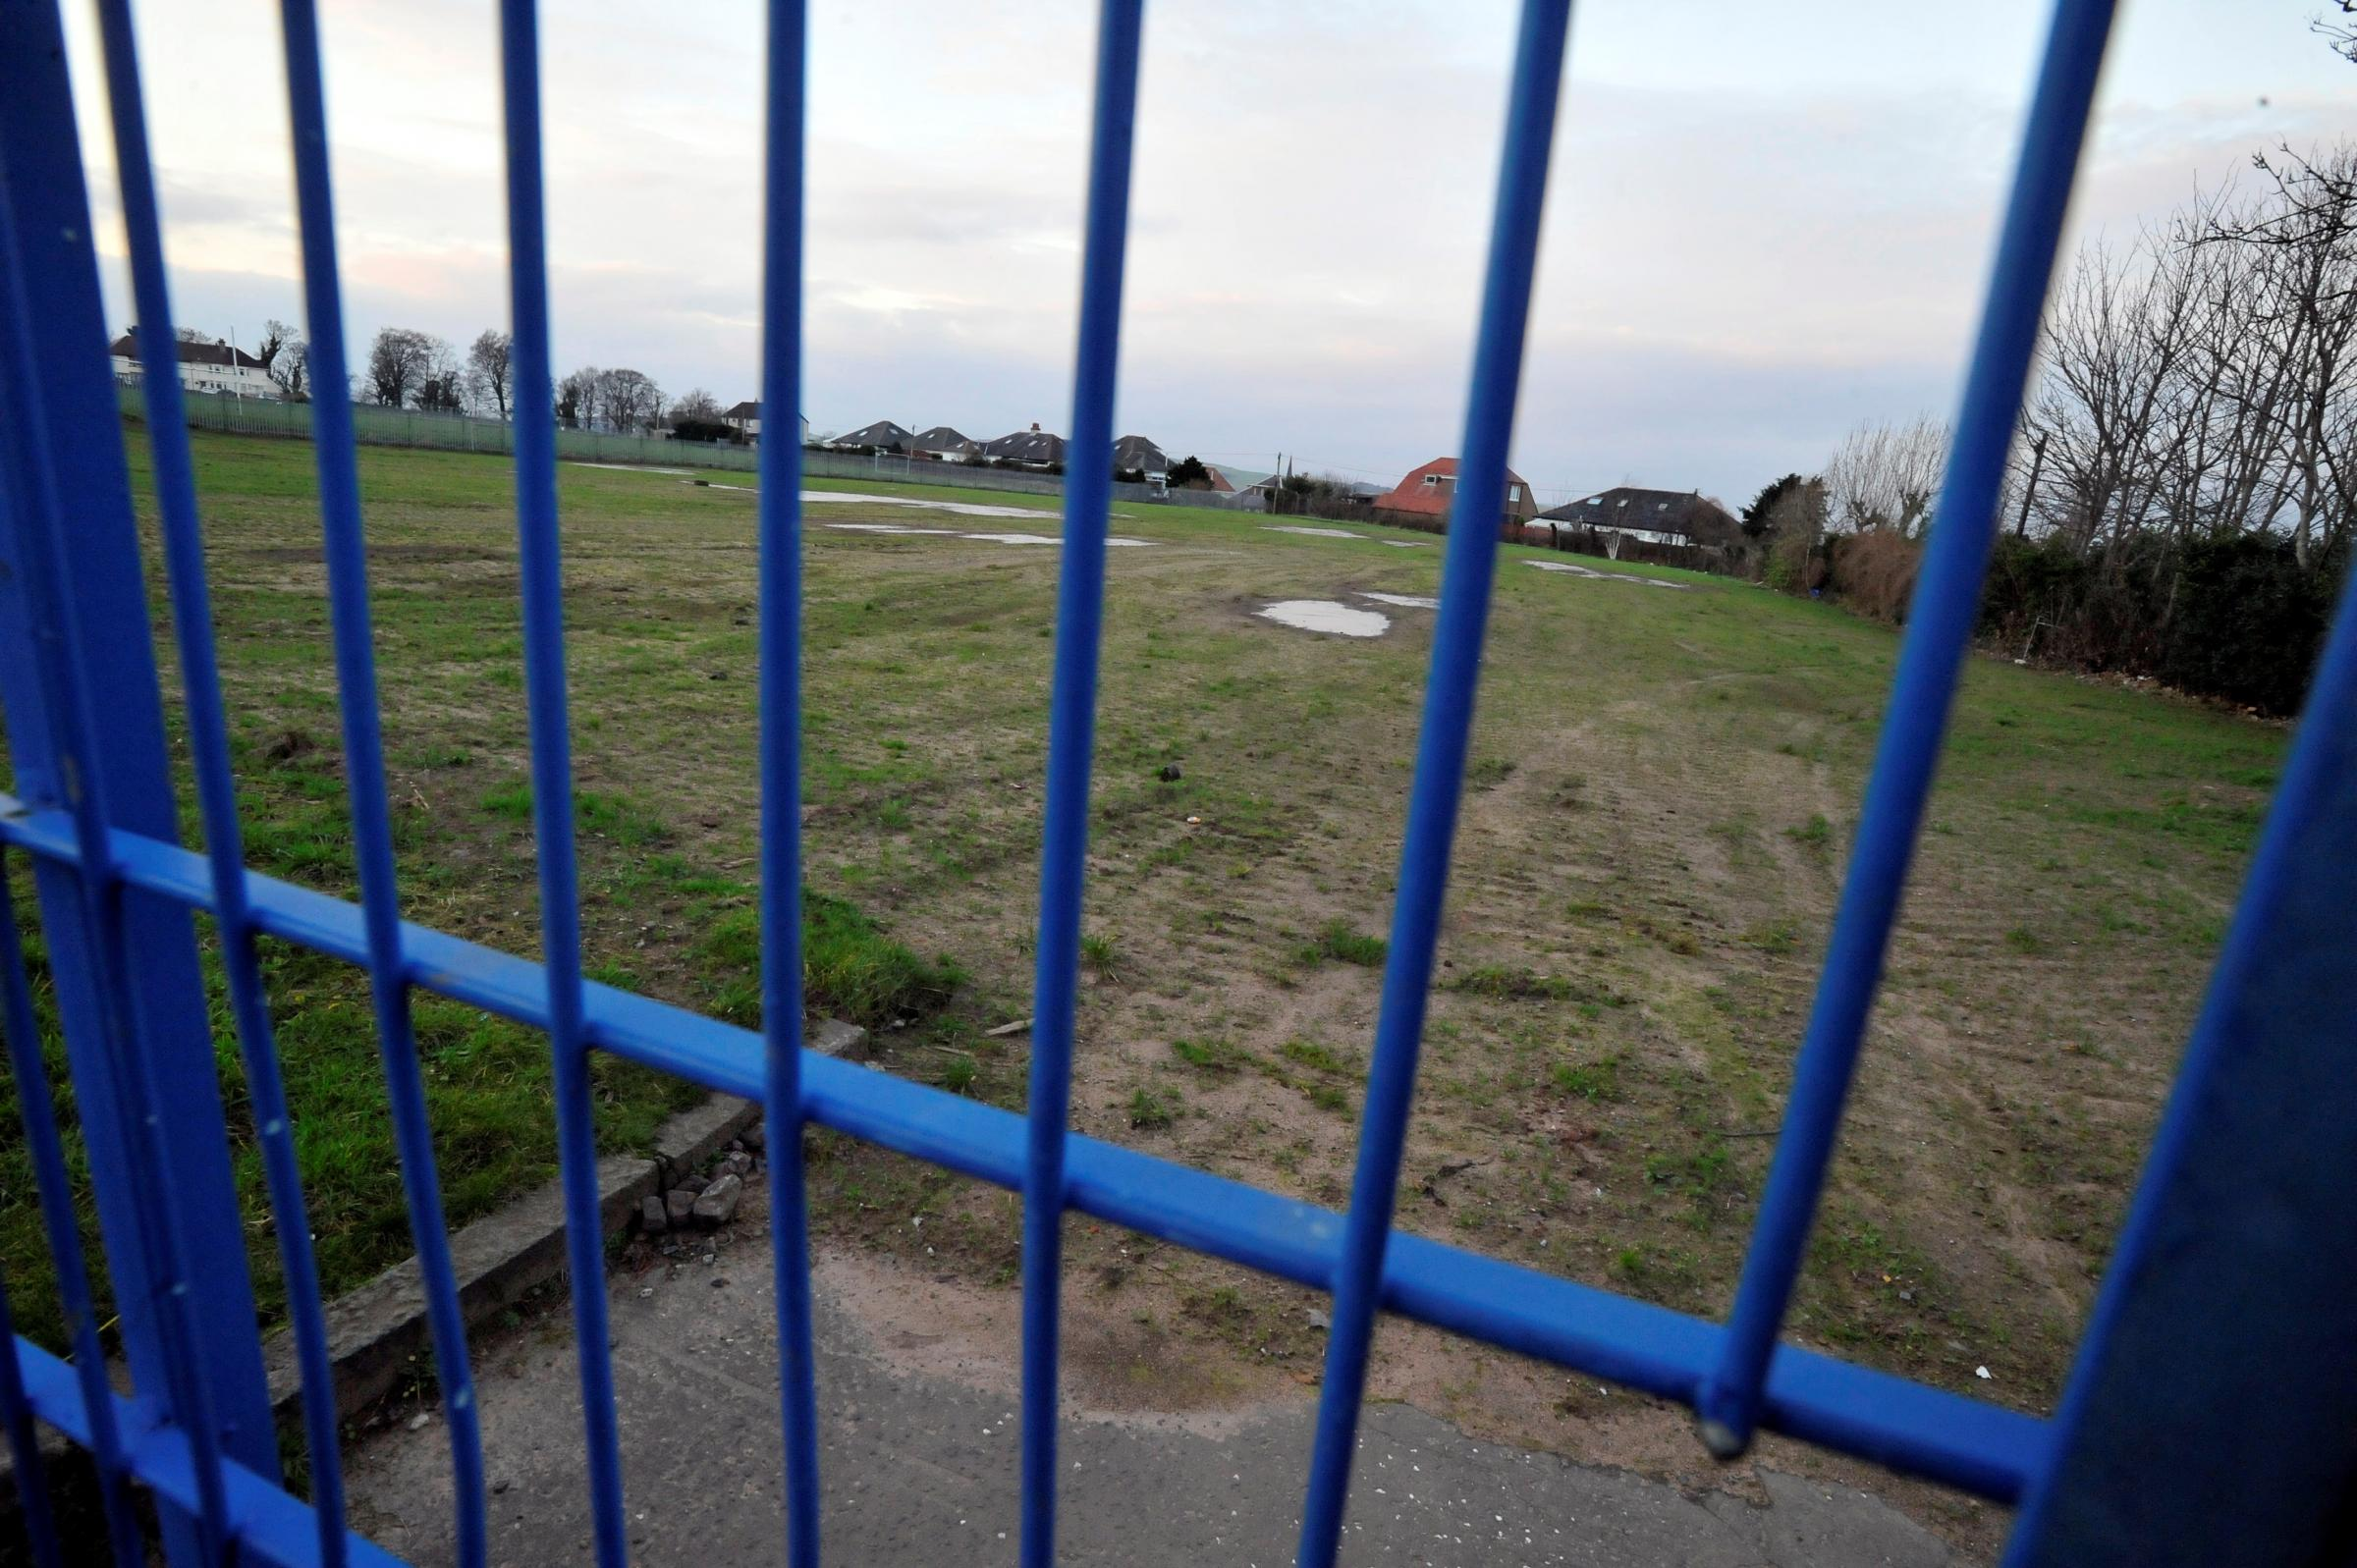 33 new homes plan for former St Mary's Primary site